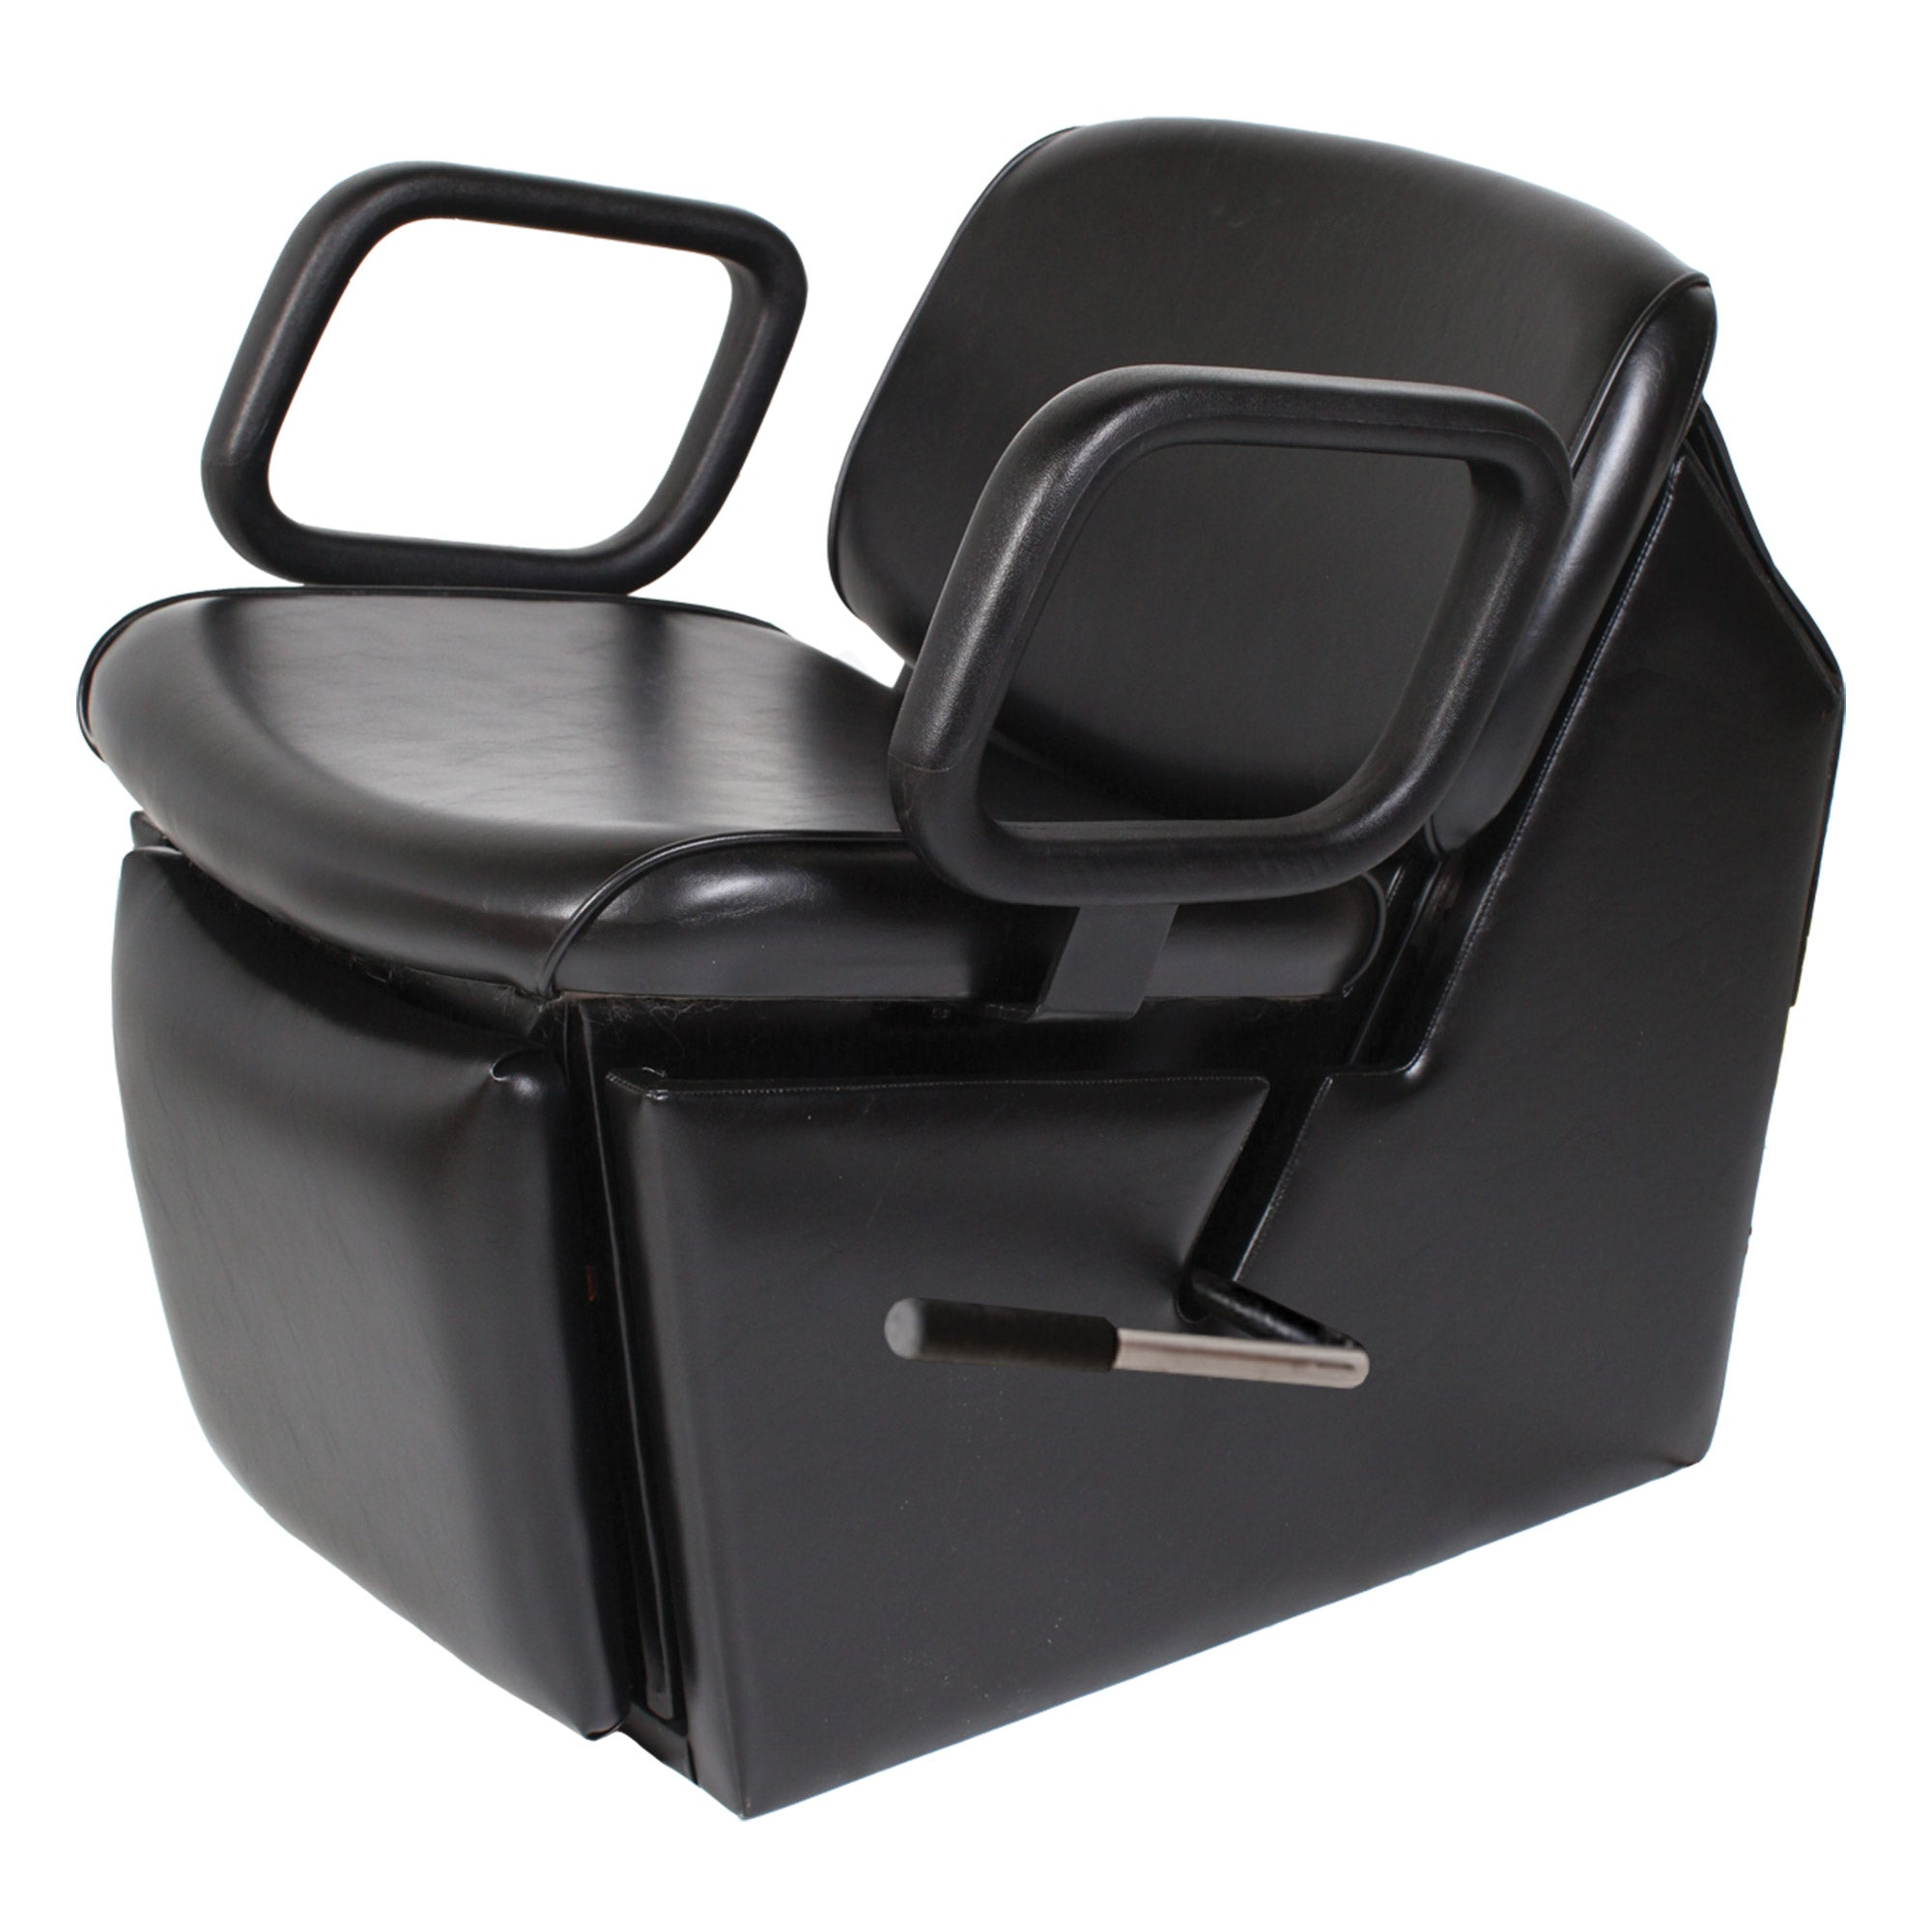 QSE 59 Electric Shampoo Chair - Collins